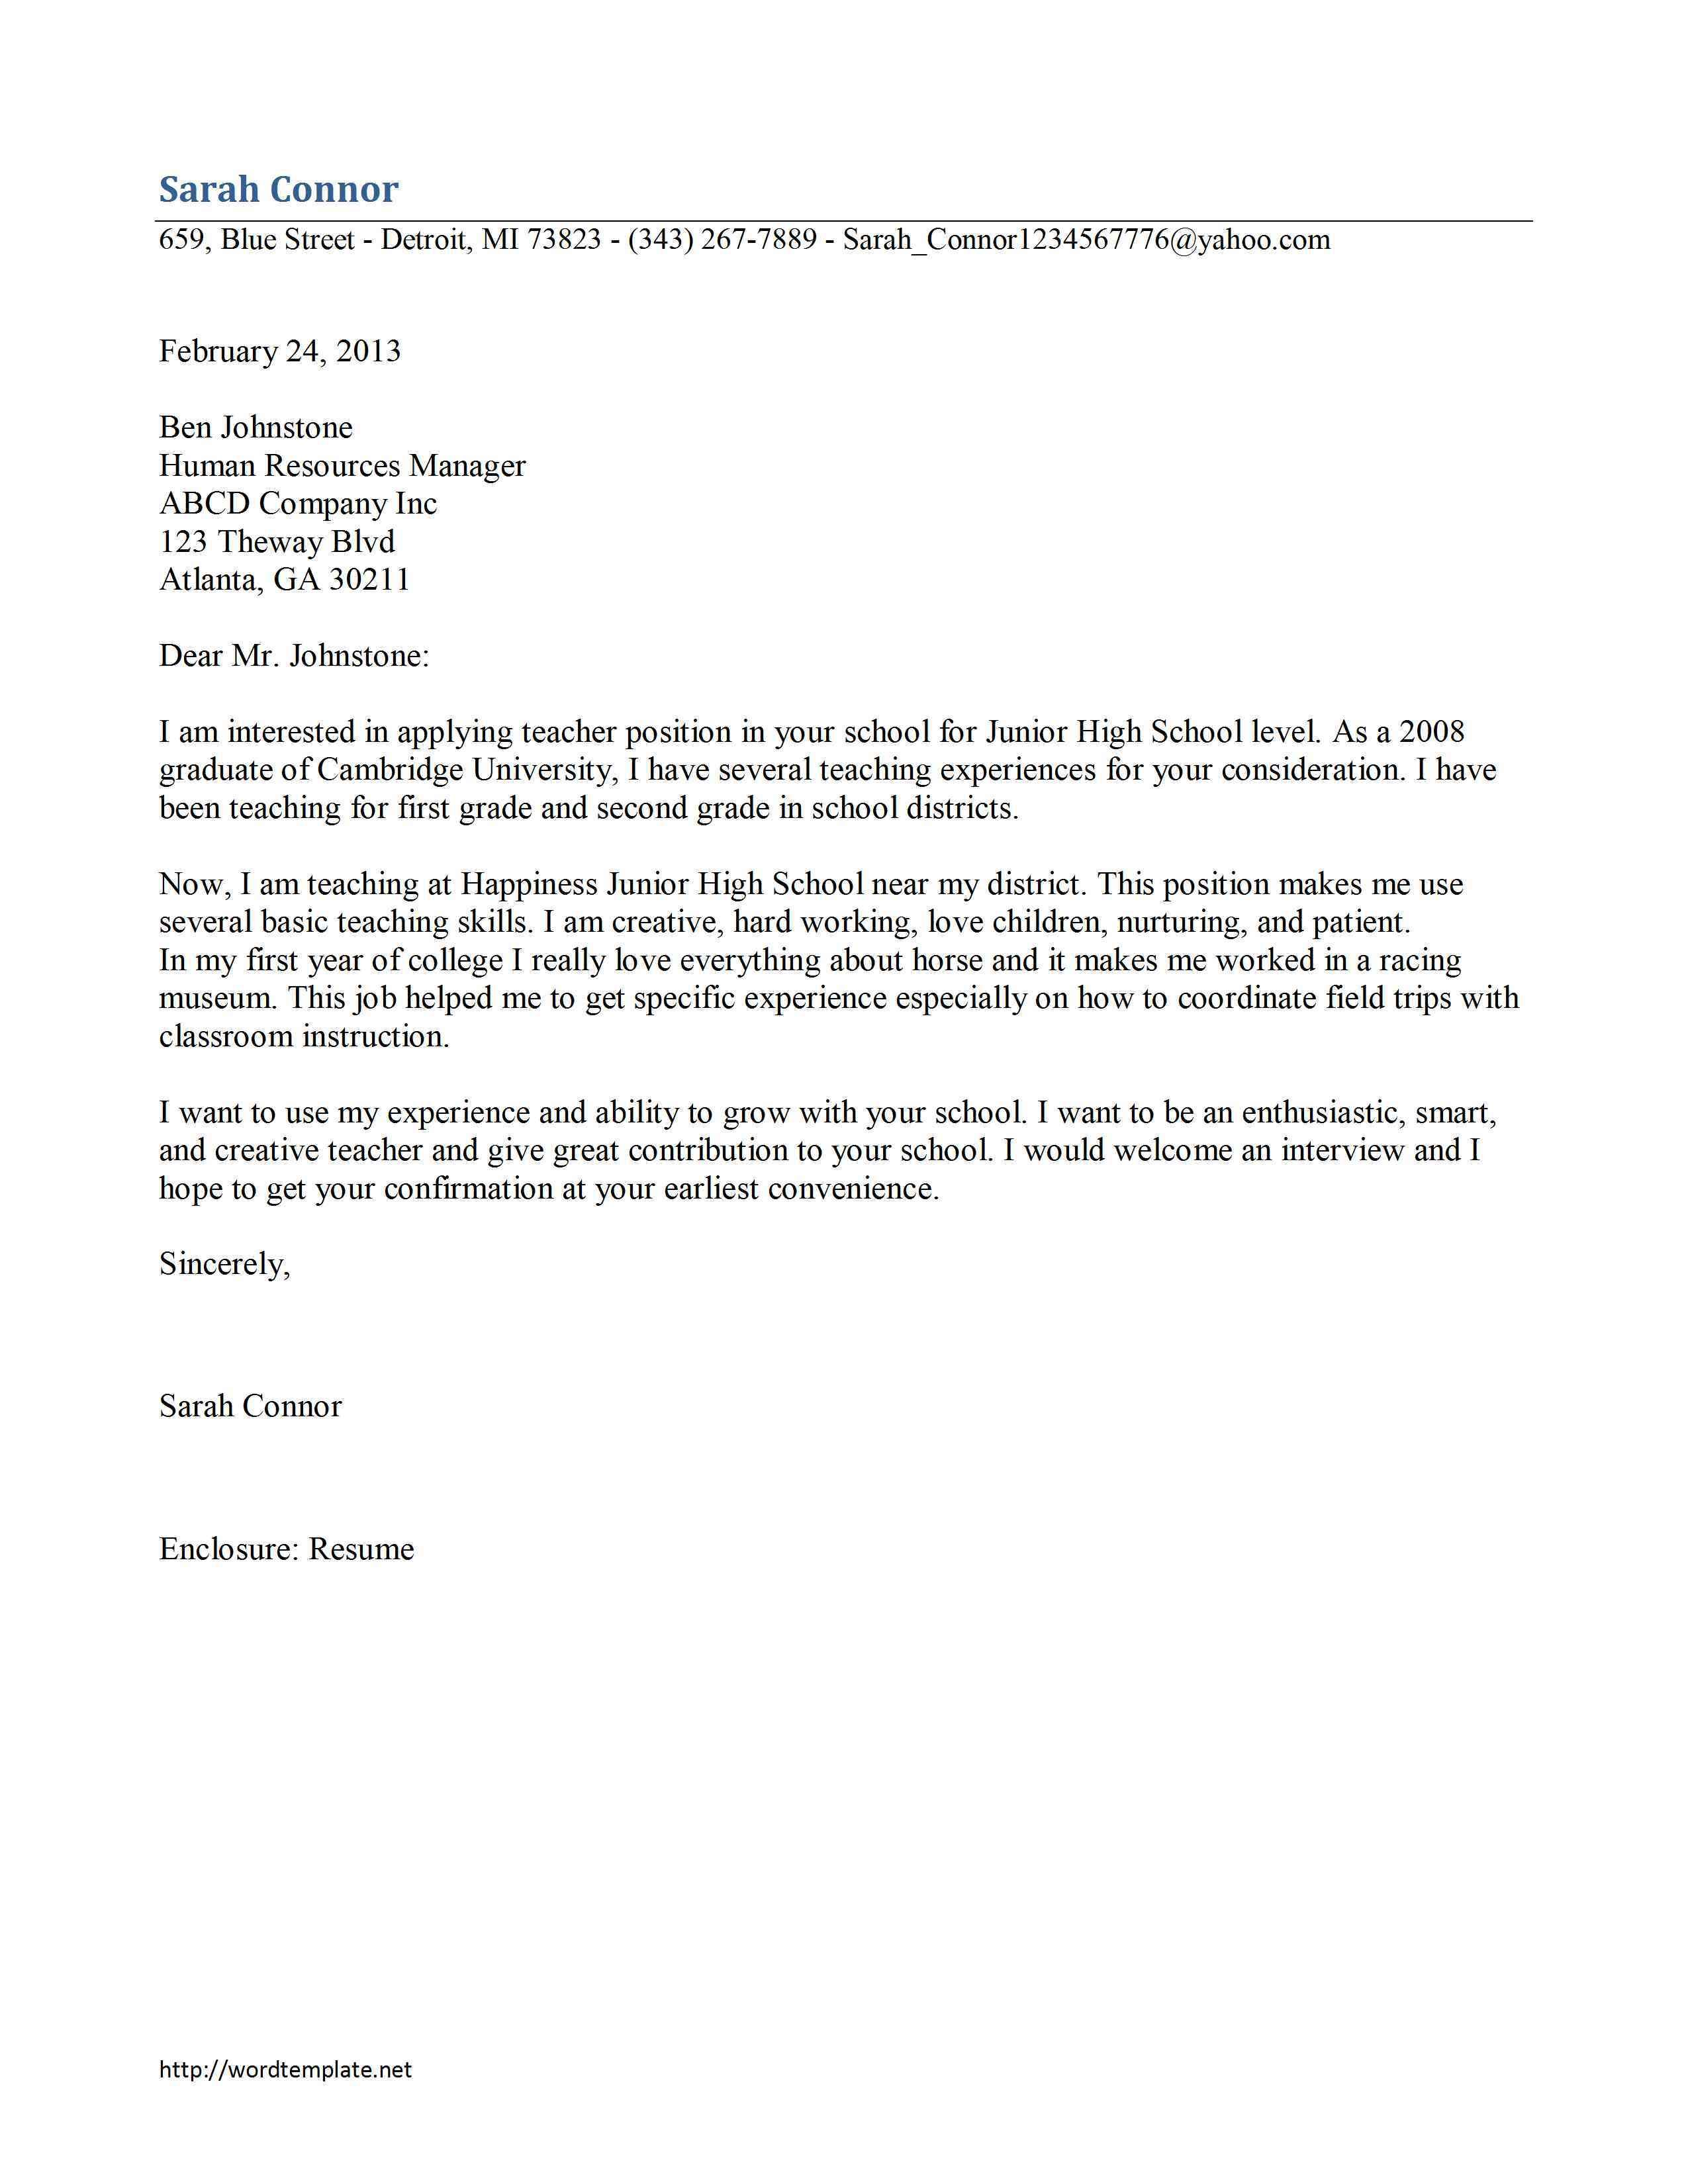 Application letter for experience certificate for teacher penn application letter for experience certificate for teacher penn state online degrees certificates and courses cover letter 1betcityfo Image collections